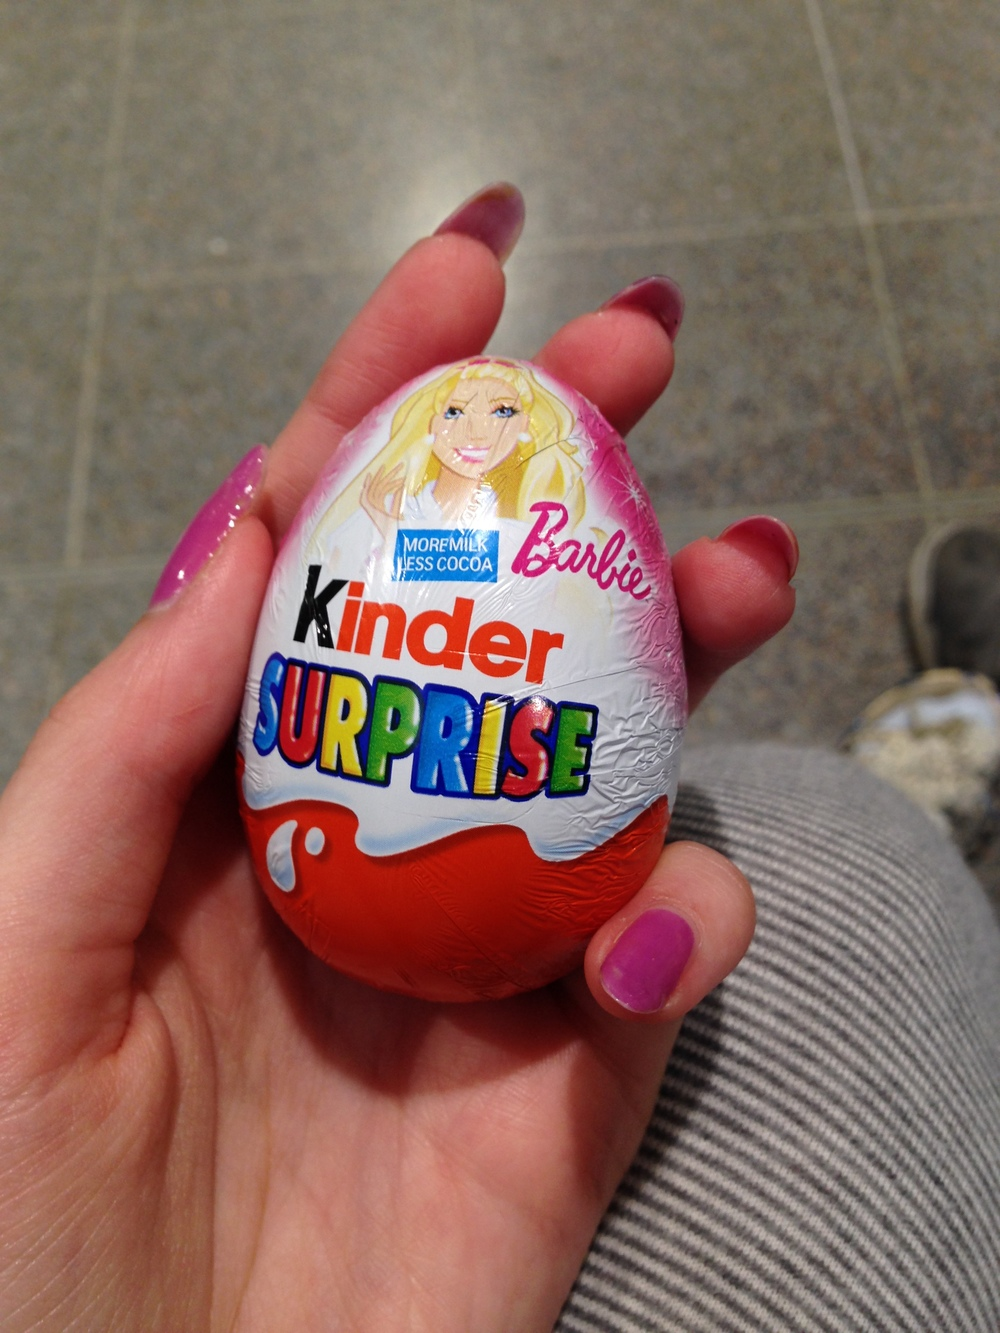 took the last chance to have a Kinder Surprise in the UK ♥